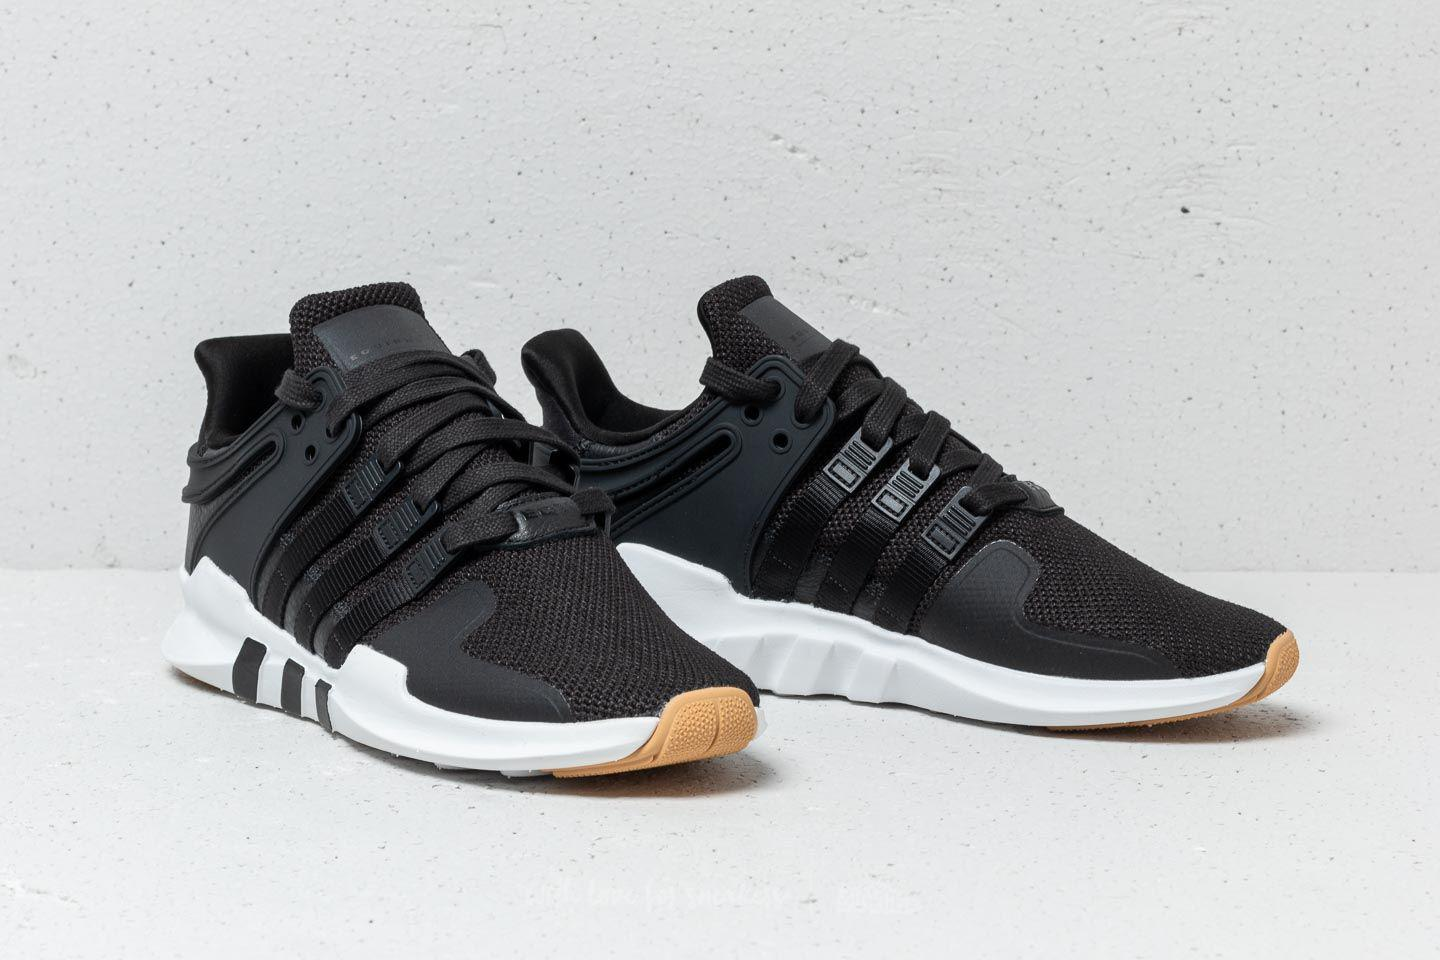 8044ef258311 Lyst - adidas Originals Adidas Eqt Support Adv Core Black  Ftw White ...